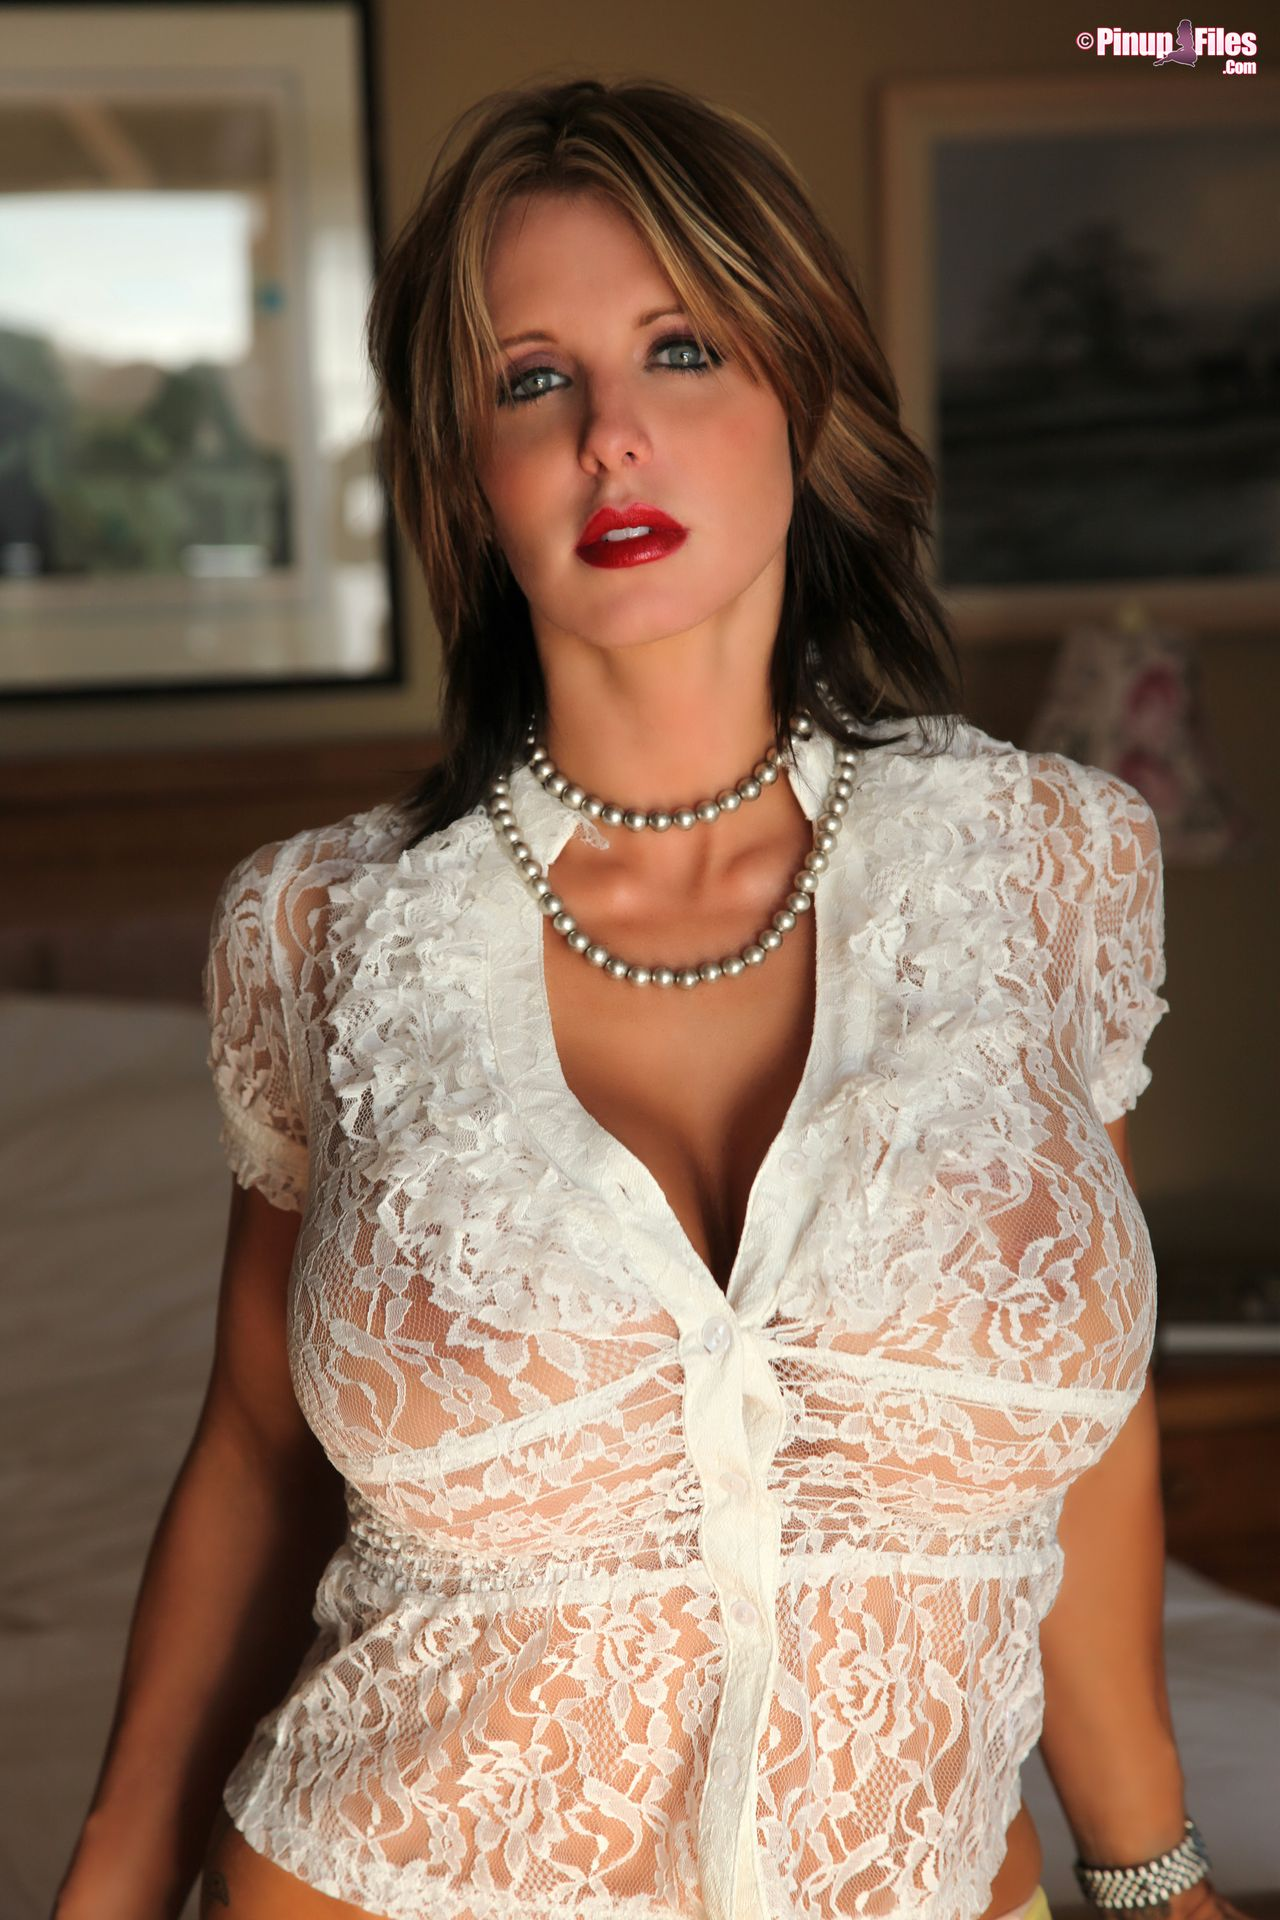 Brandy robbins tits adult gallery excellent